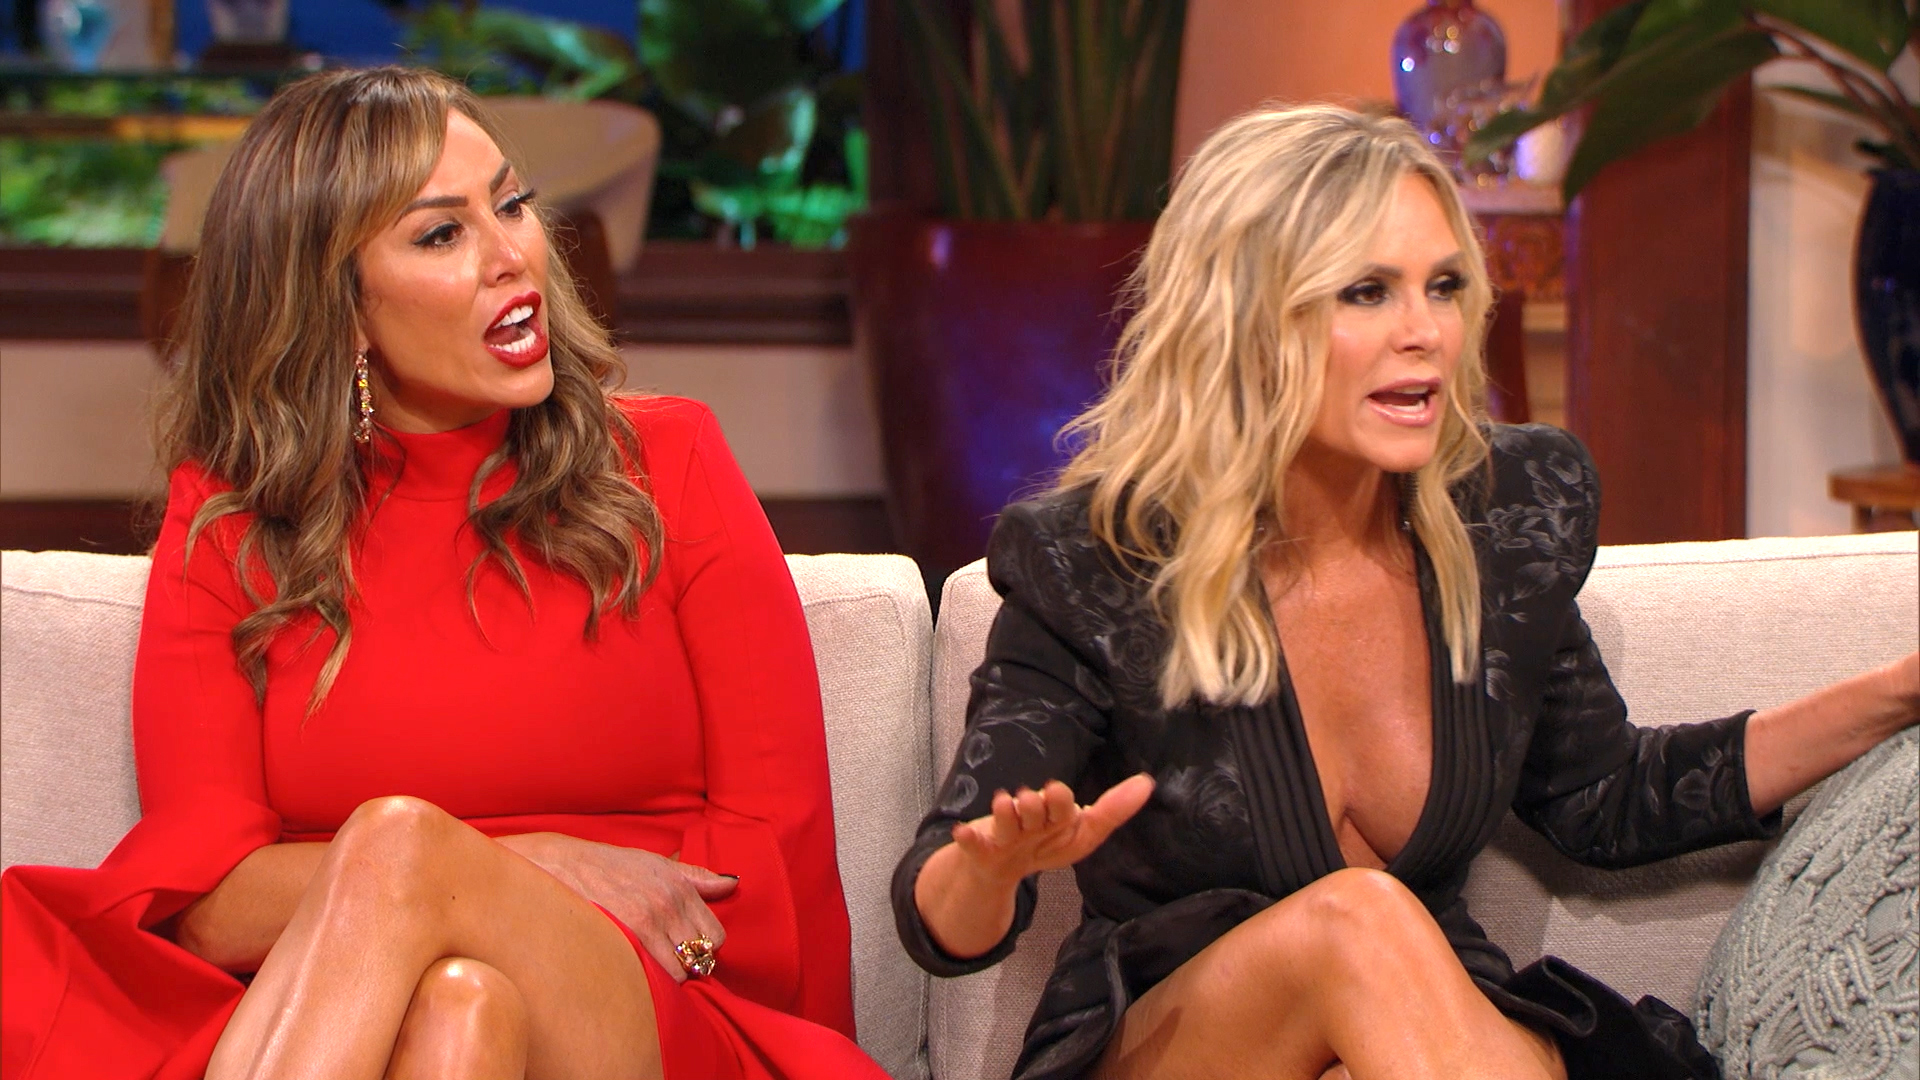 This Is the Real Reason Tamra Judge and Shannon Beador Had a Falling Out